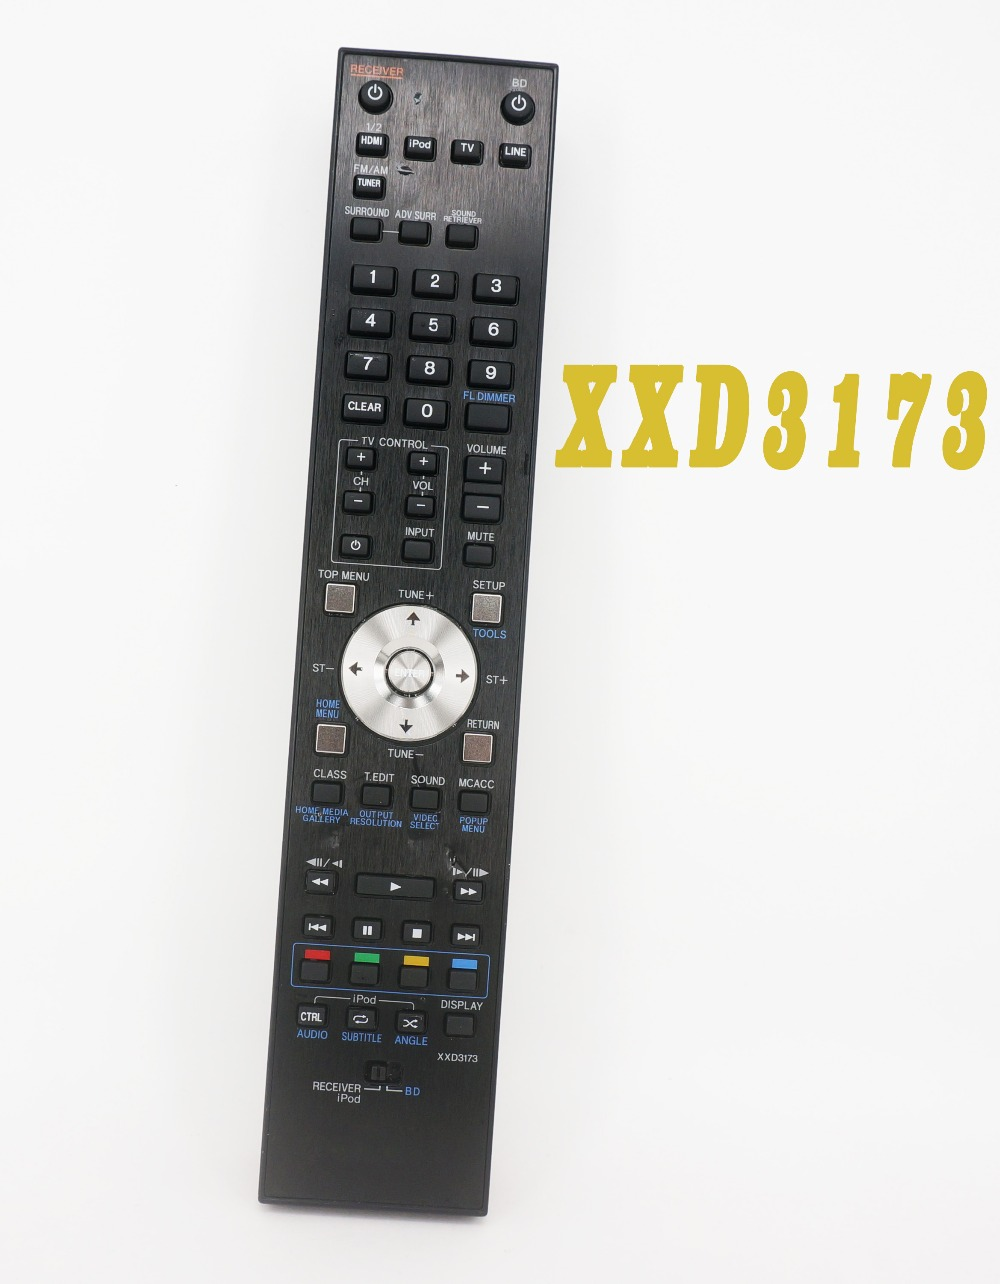 Used Original Remote Control XXD3173 FOR Pioneer Blu-Ray LX Series BD Surround Receiver 3d42738i tv remote receiver receives board juc7 820 00047872 used disassemble